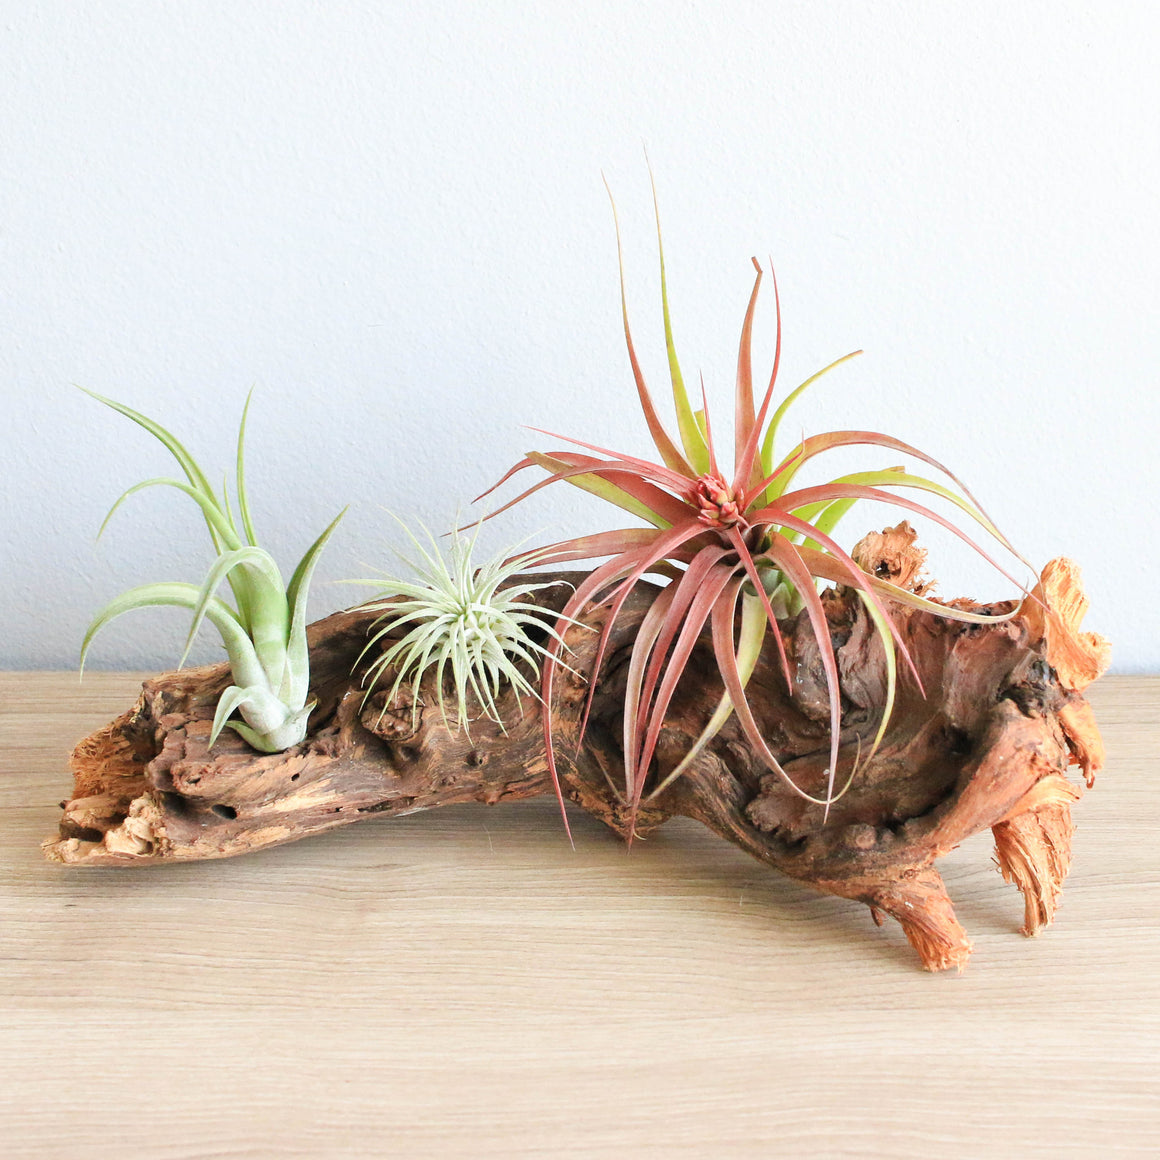 Medium African Mopani Wood - Choose Your Custom Tillandsia Air Plants